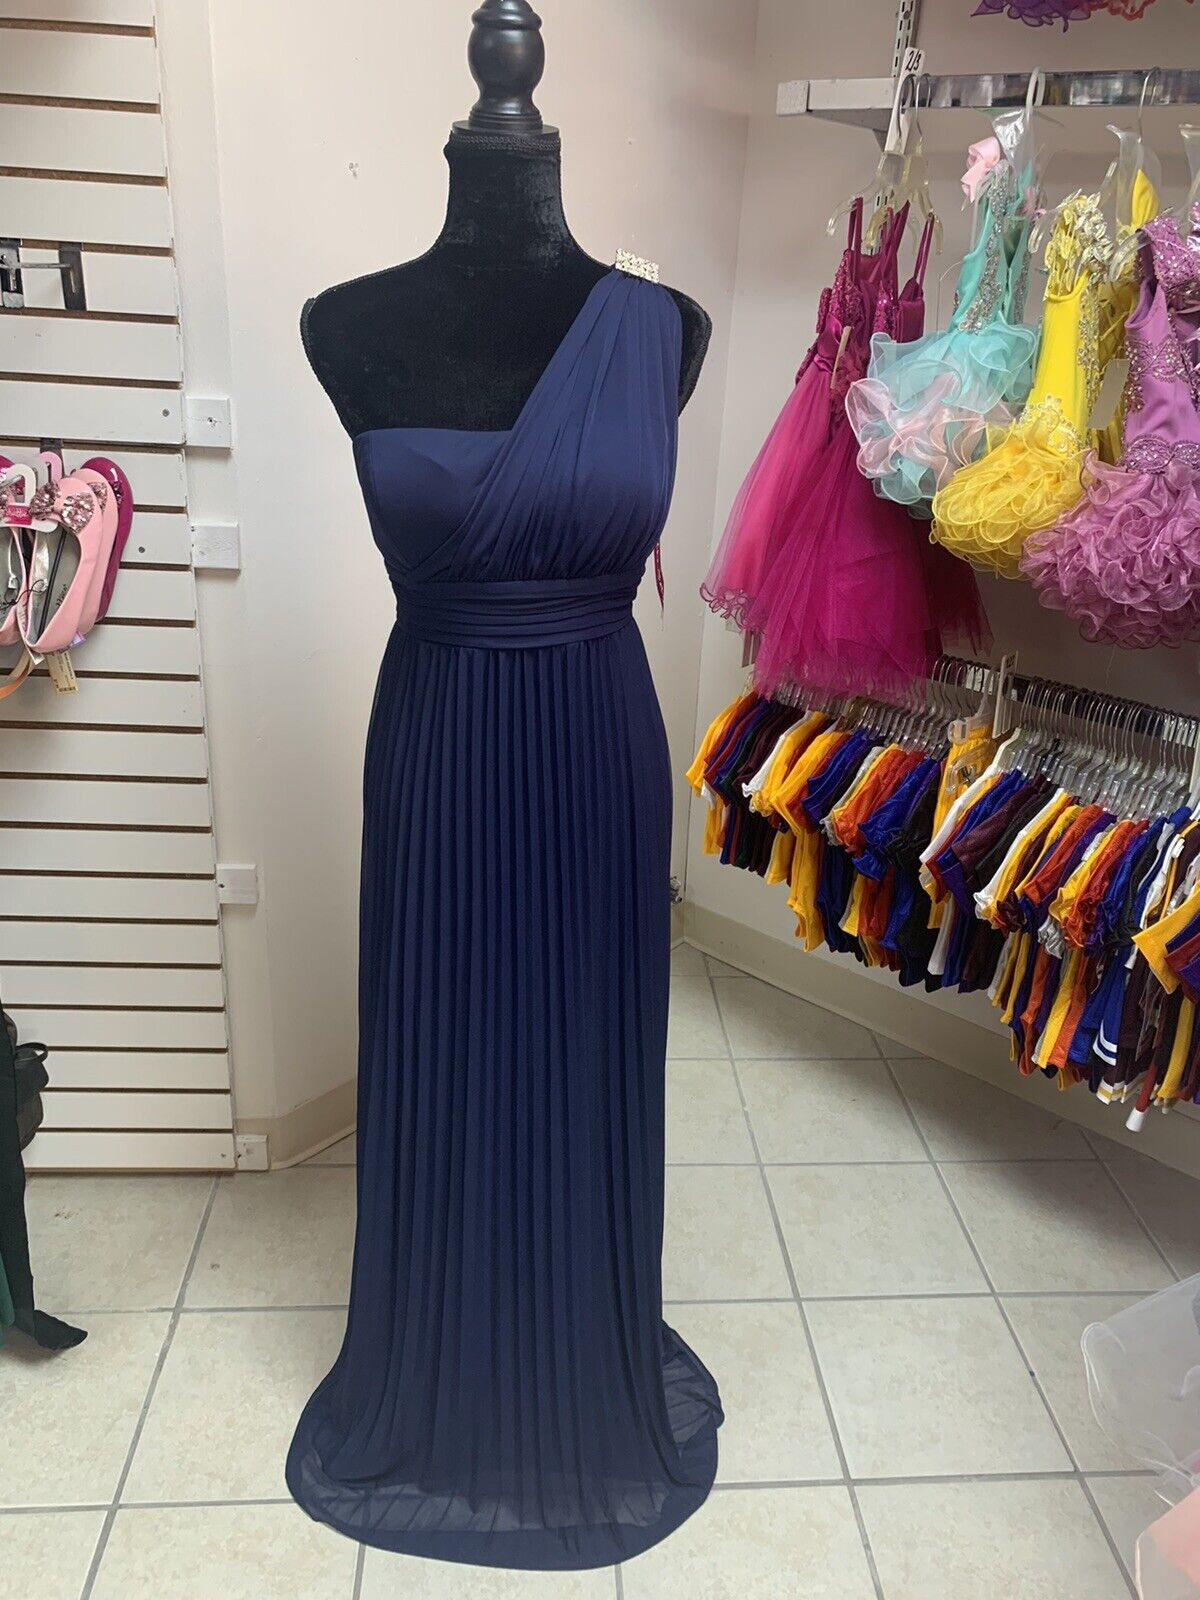 10 One Shoulder Prom Homecoming Formal Pageant Evening Gown Dress NWT